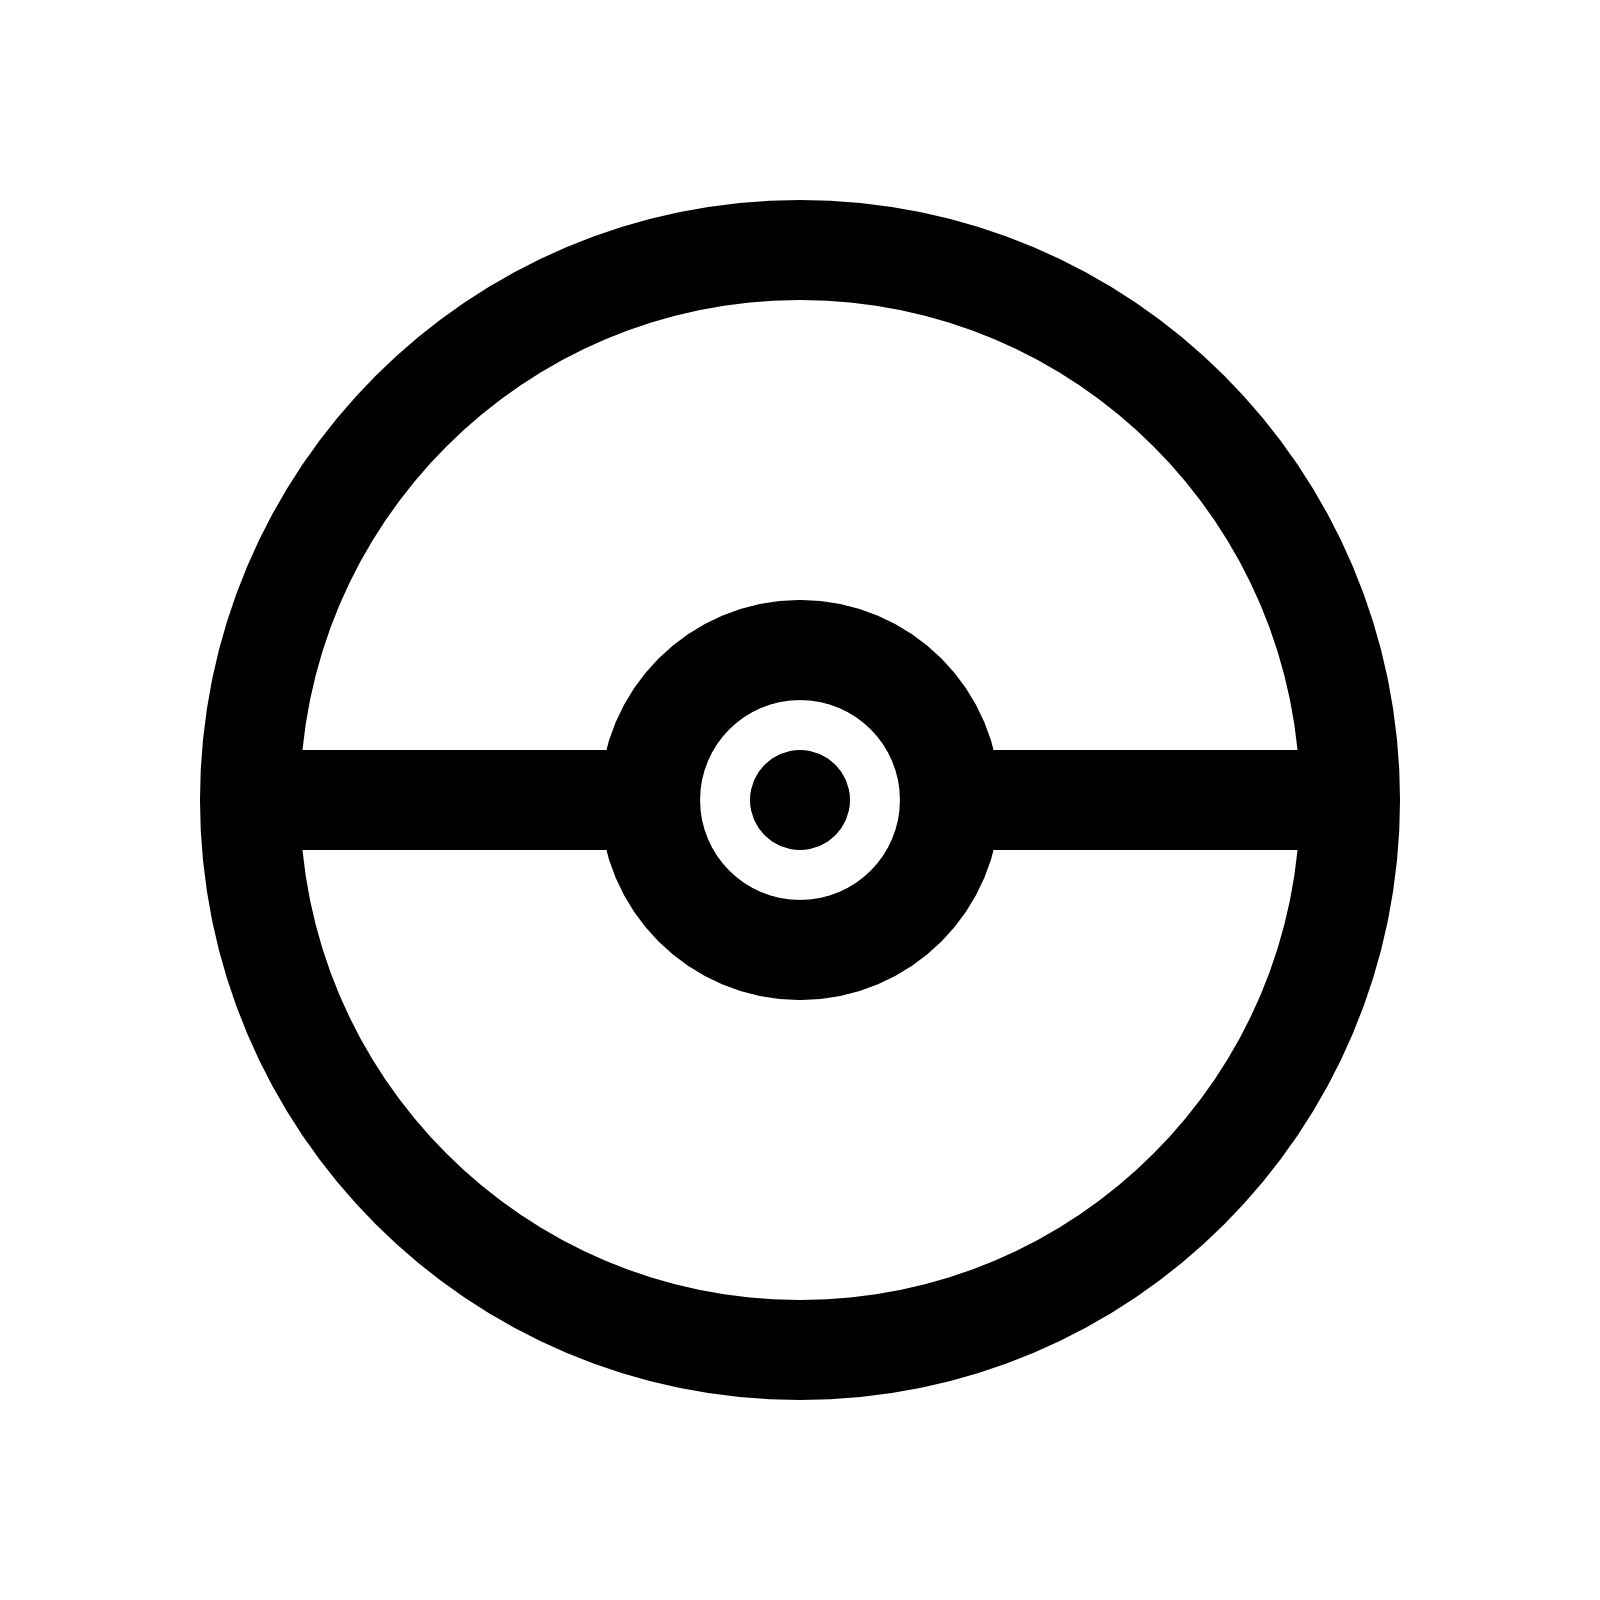 pokeball icon download icons #16865